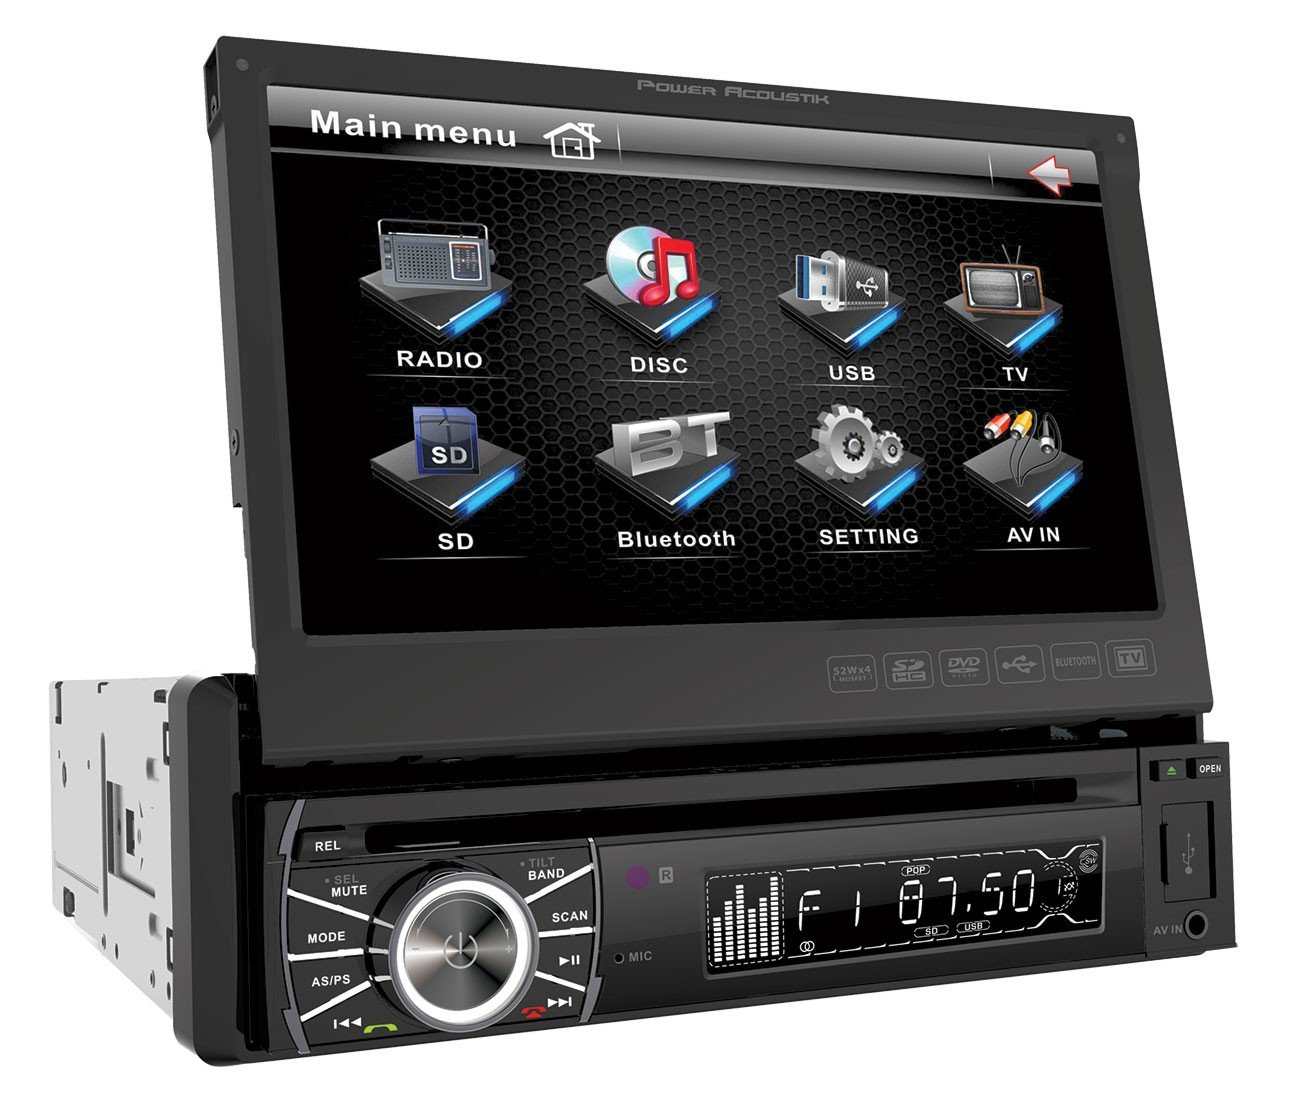 Power Acoustik Ptid 8920b In Dash Dvd Am Fm Receiver Your System Diagram Page 10 Car Audio Diymobileaudiocom With 7 Inch Flip Out Touchscreen Monitor And Usb Sd Input Electronics